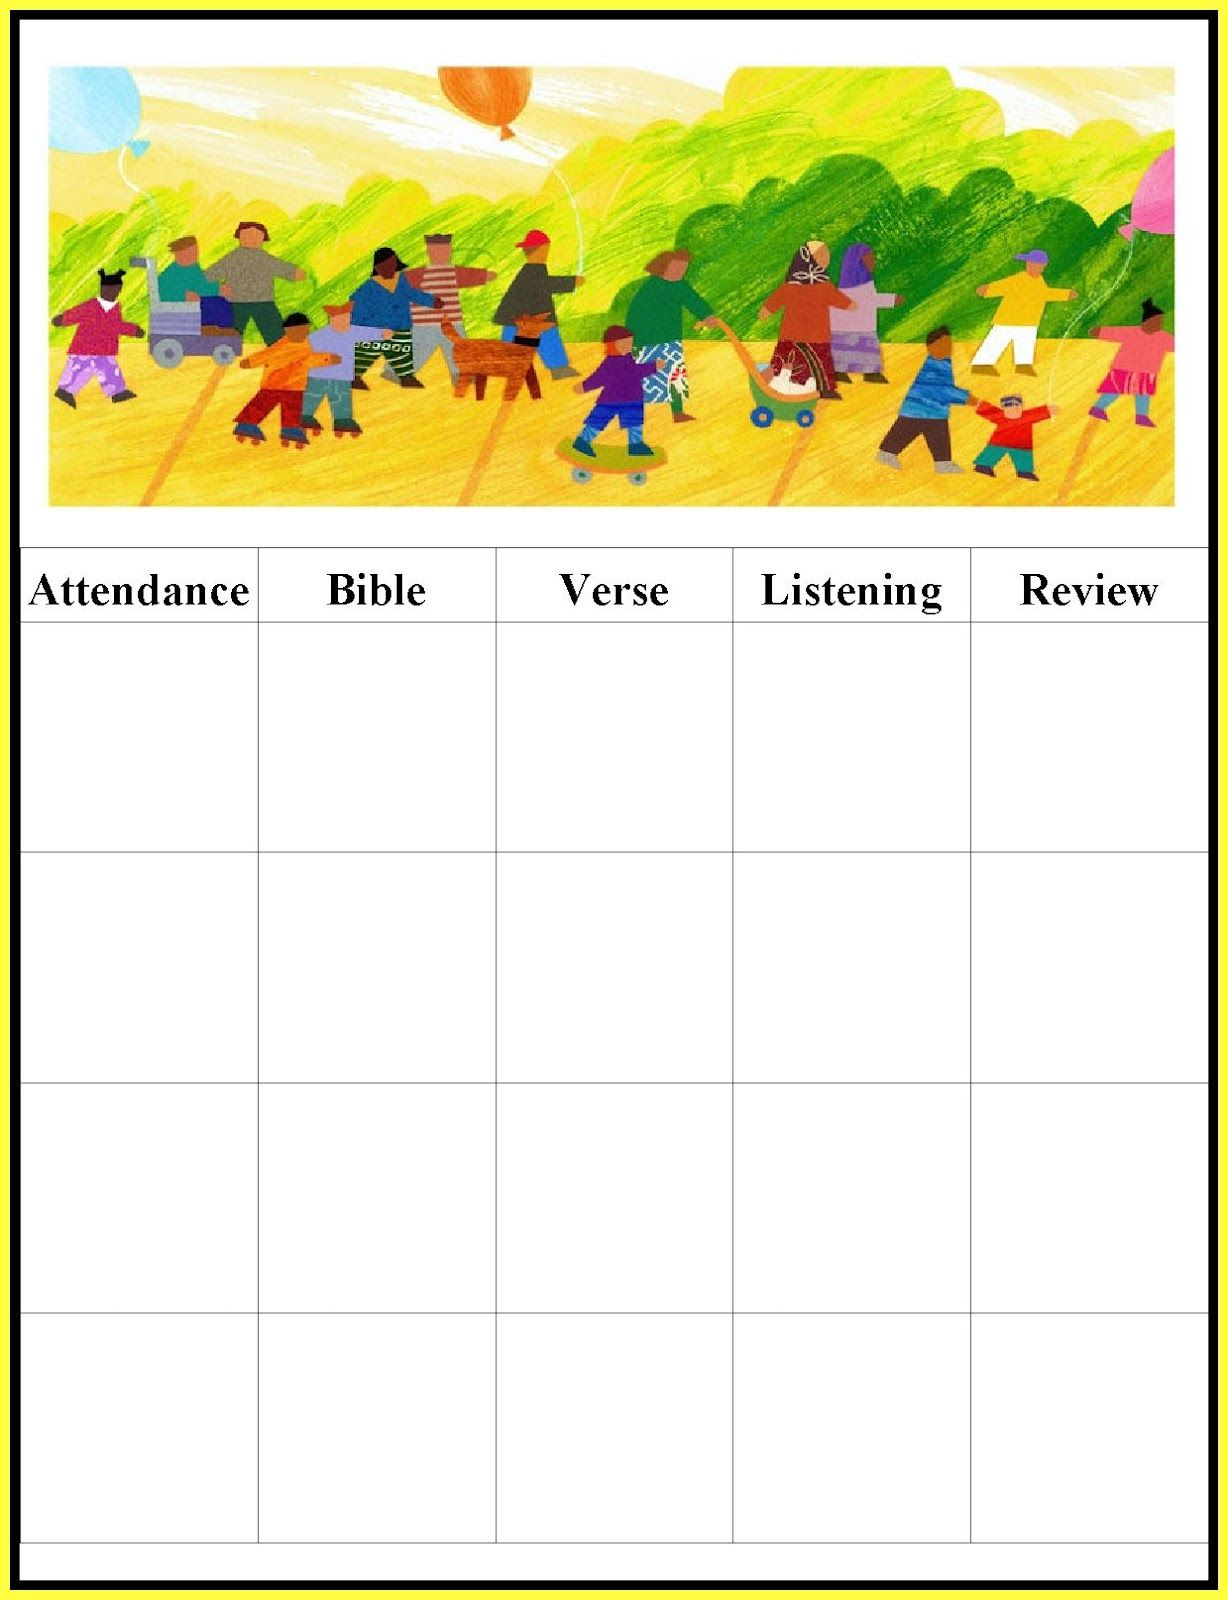 picture about Sunday School Attendance Chart Free Printable named Childrens Gems Inside of My Treasure Box: Sunday College